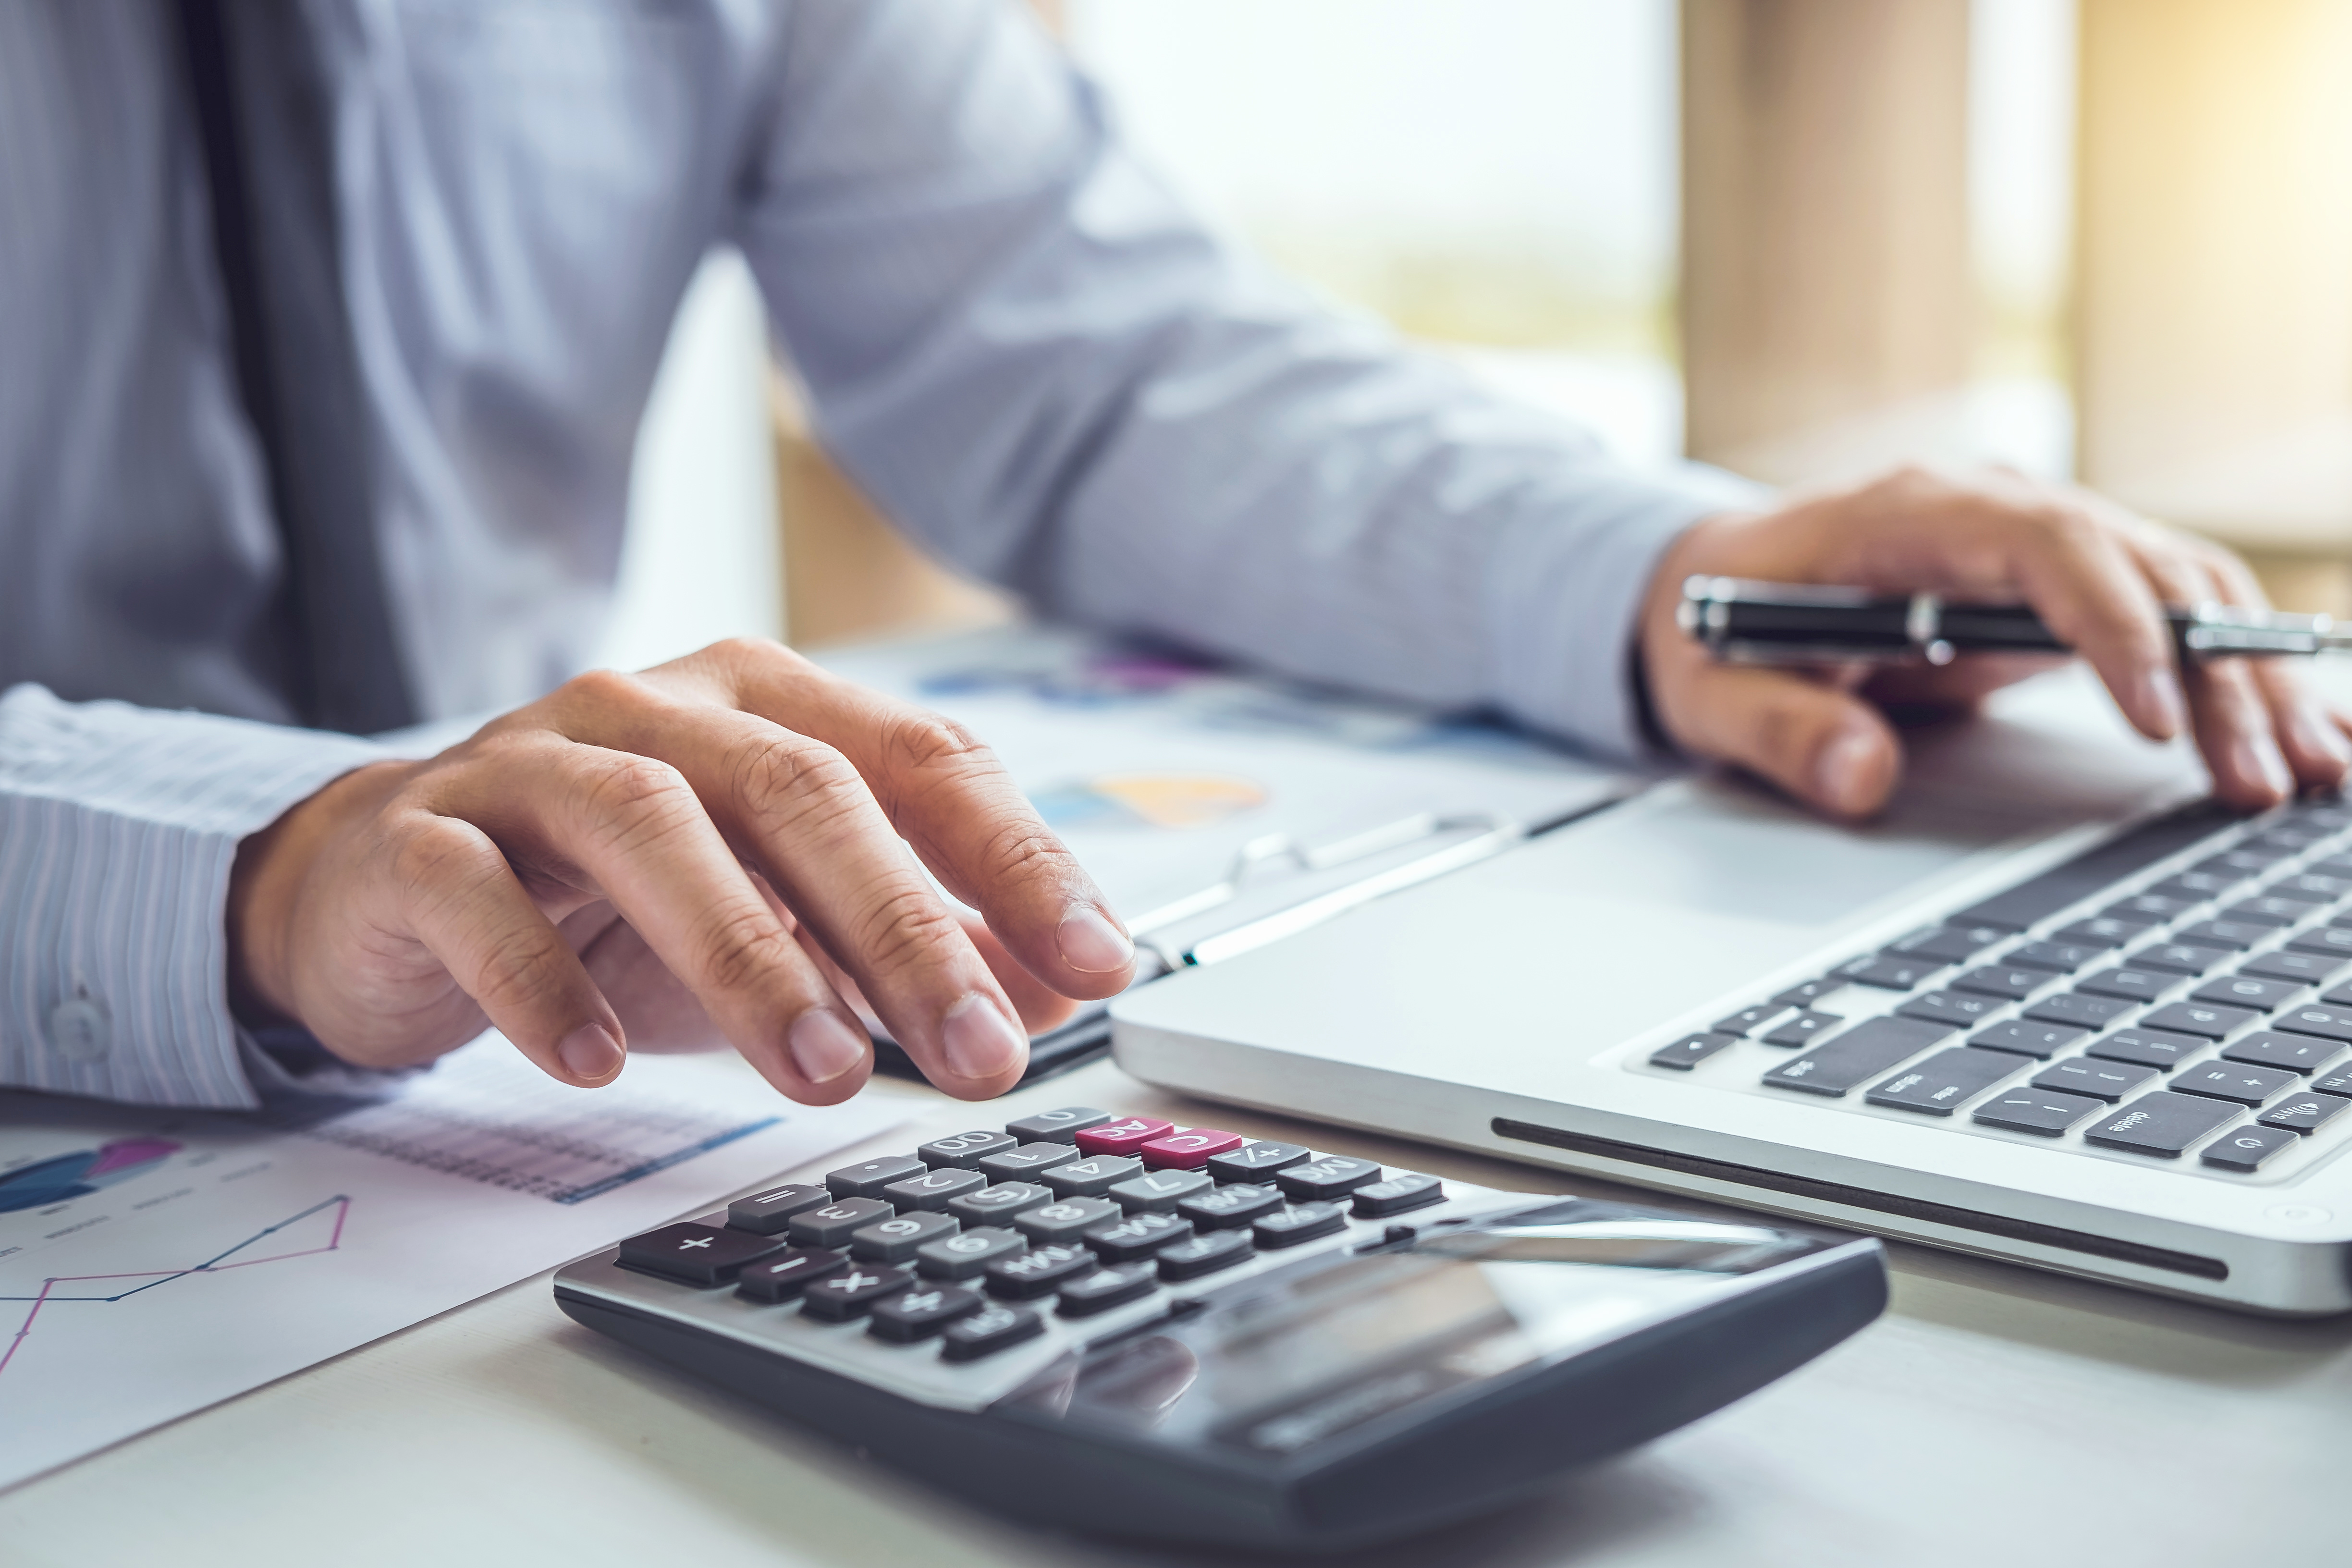 Man operating calculator to illustrate piece on benefits of SEIS/EIS